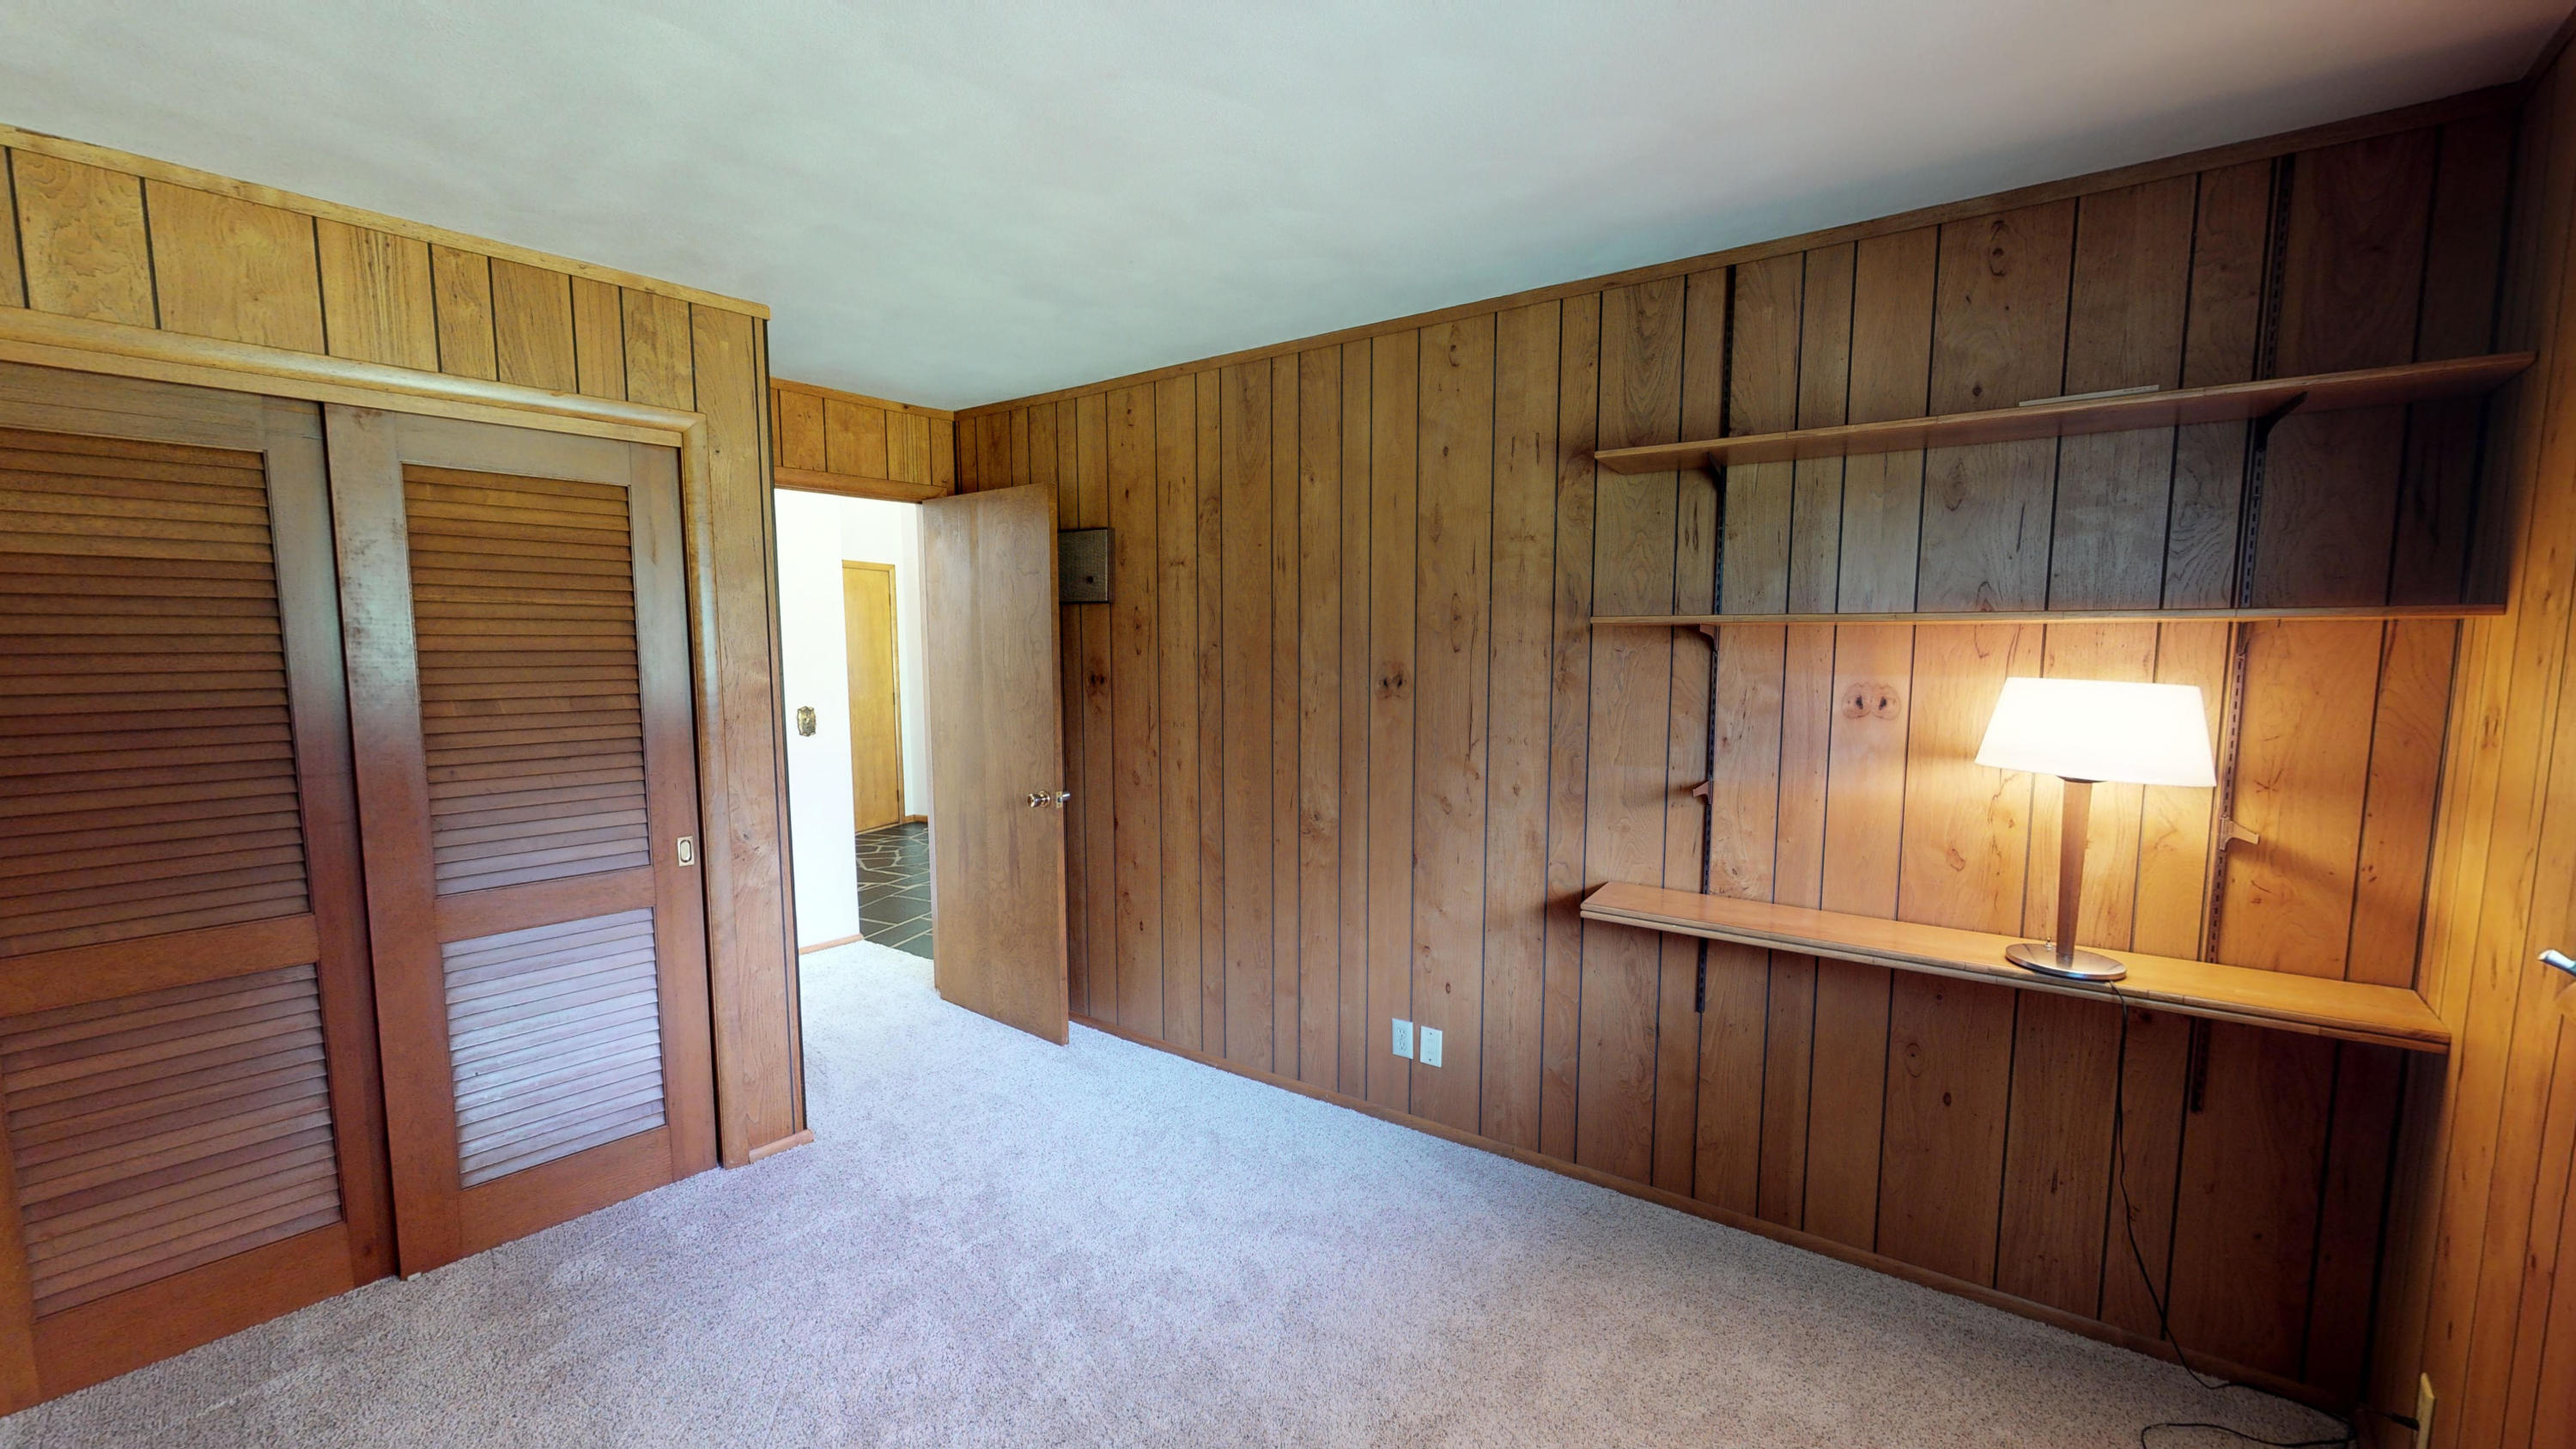 349 Woodland Dr, Whitewater, Wisconsin 53190, 4 Bedrooms Bedrooms, ,2 BathroomsBathrooms,Single-family,For Sale,Woodland Dr,1713724